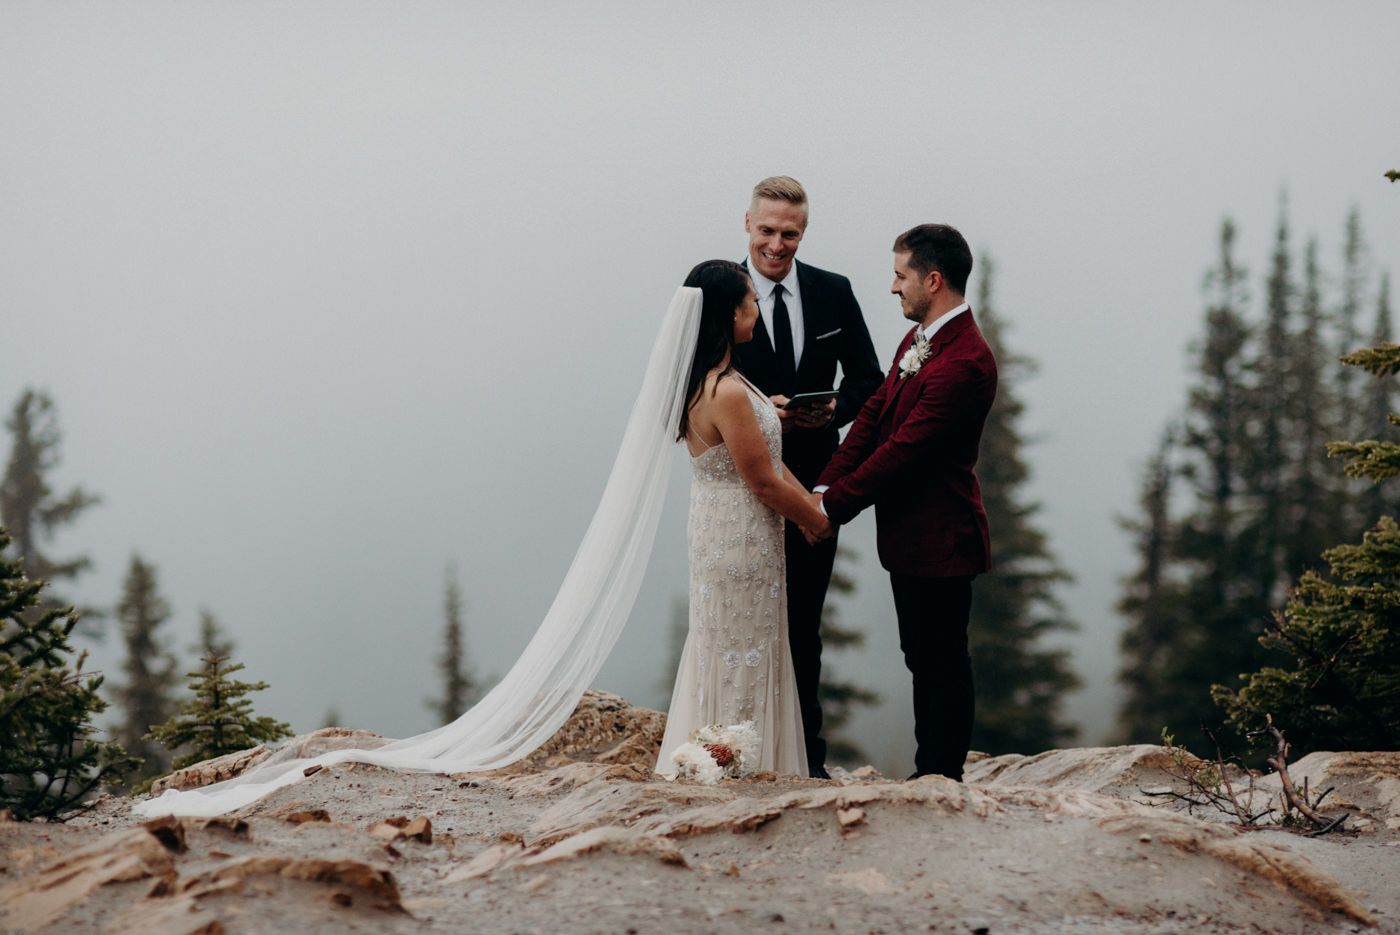 Rainy morning ceremony Banff National Park elopement